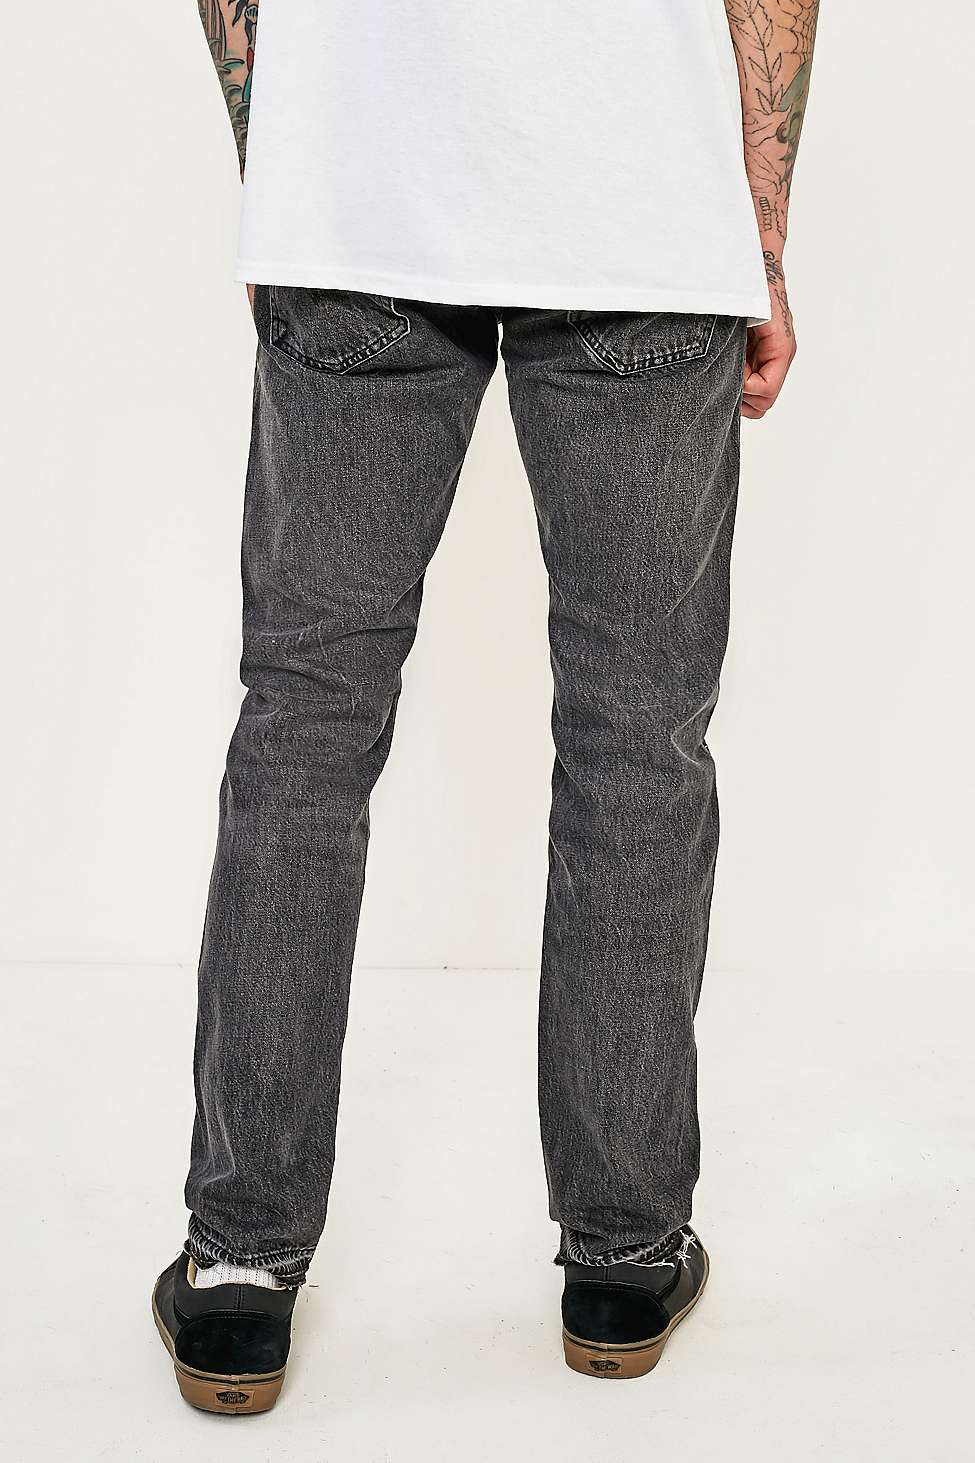 Levi's 511 Altered Spliced Black Slim Fit Jeans | Urban Outfitters